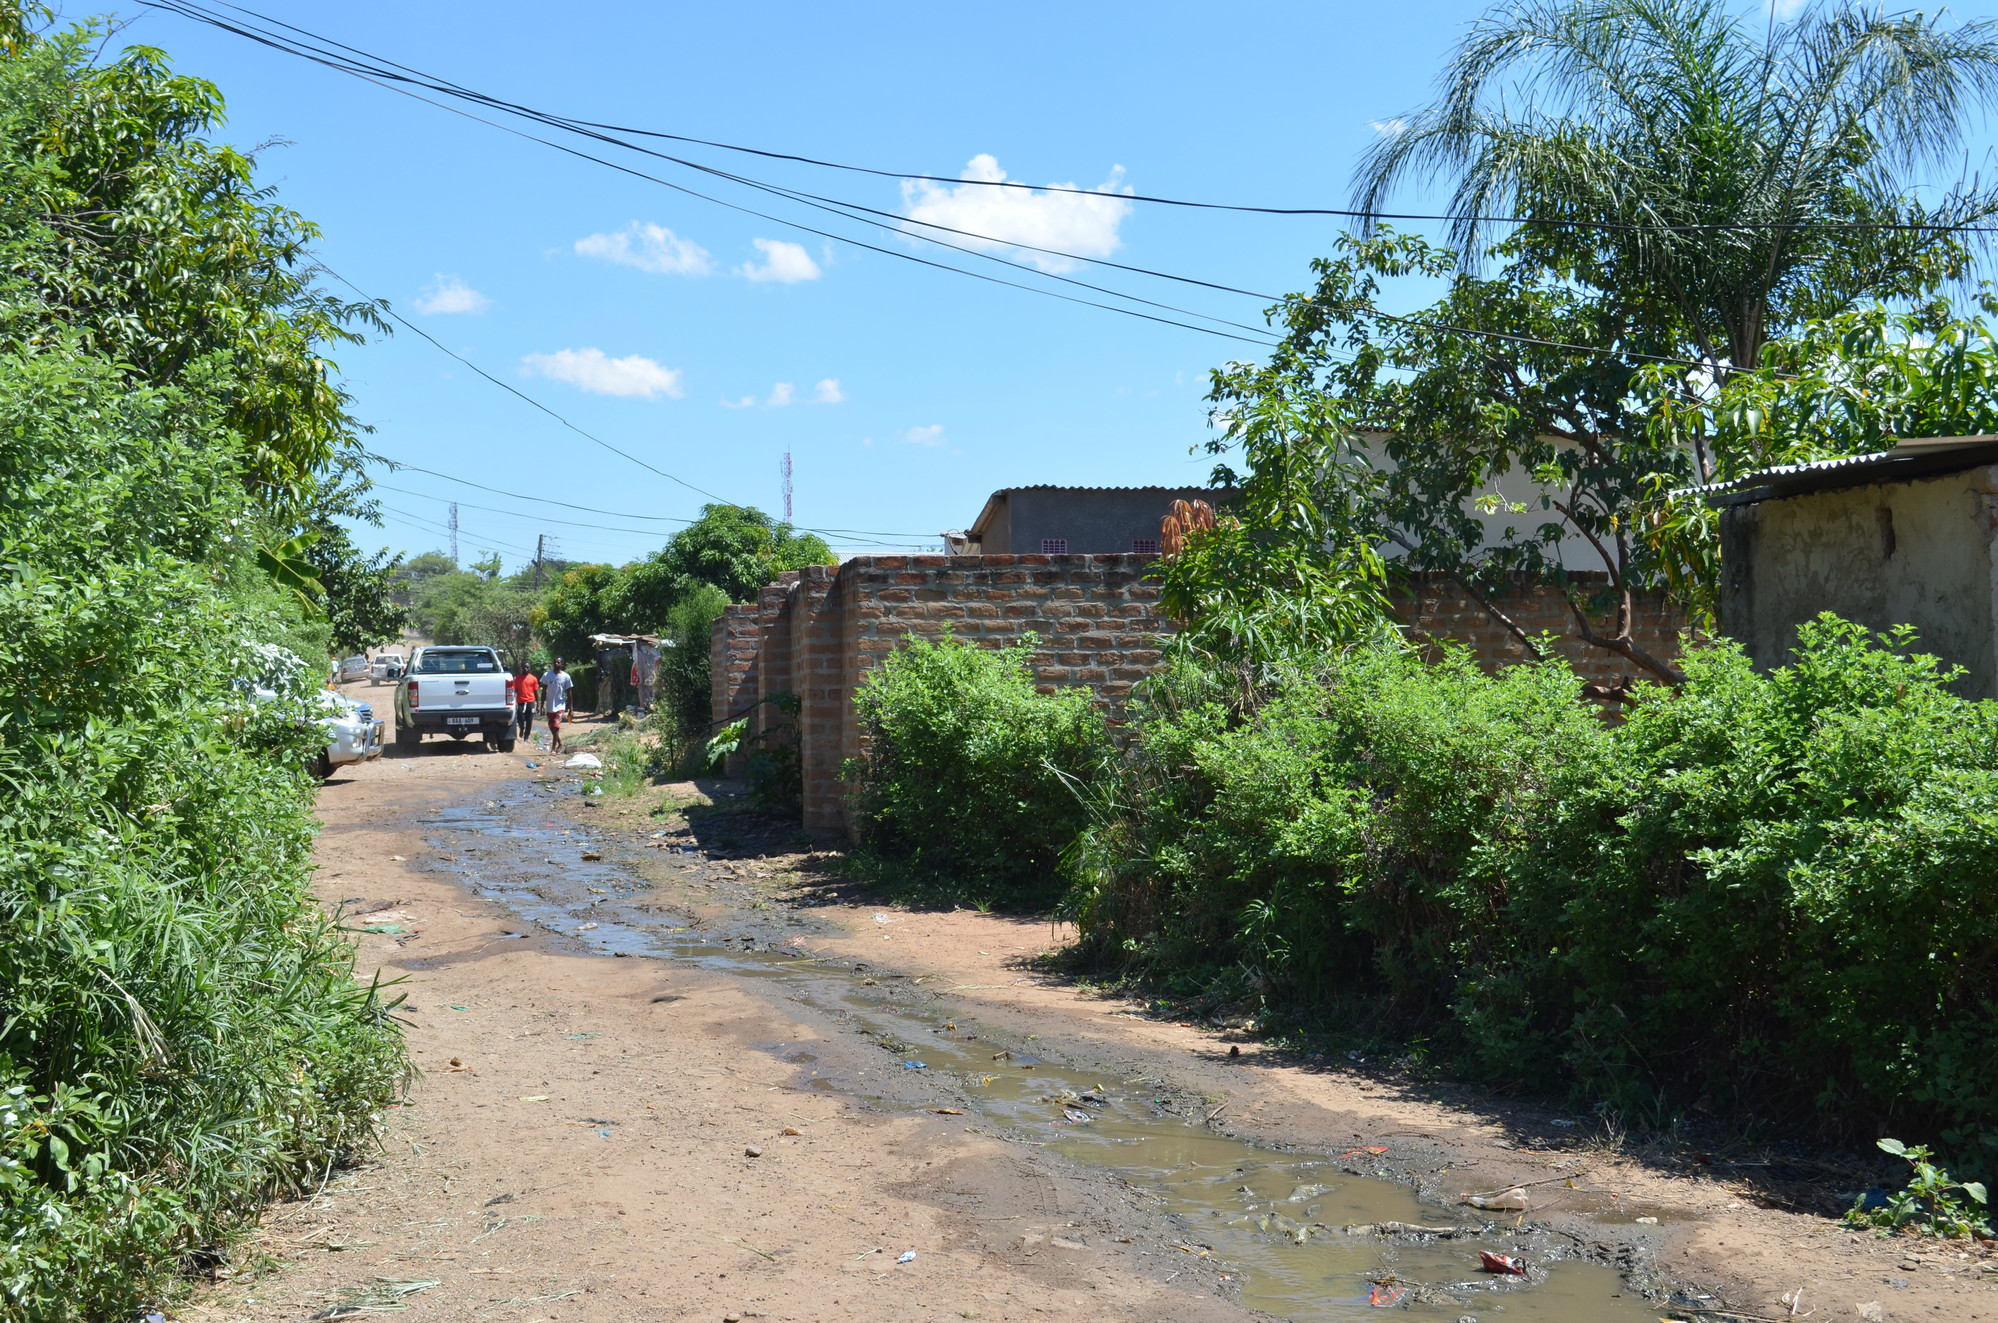 Peri-urban community Livingstone